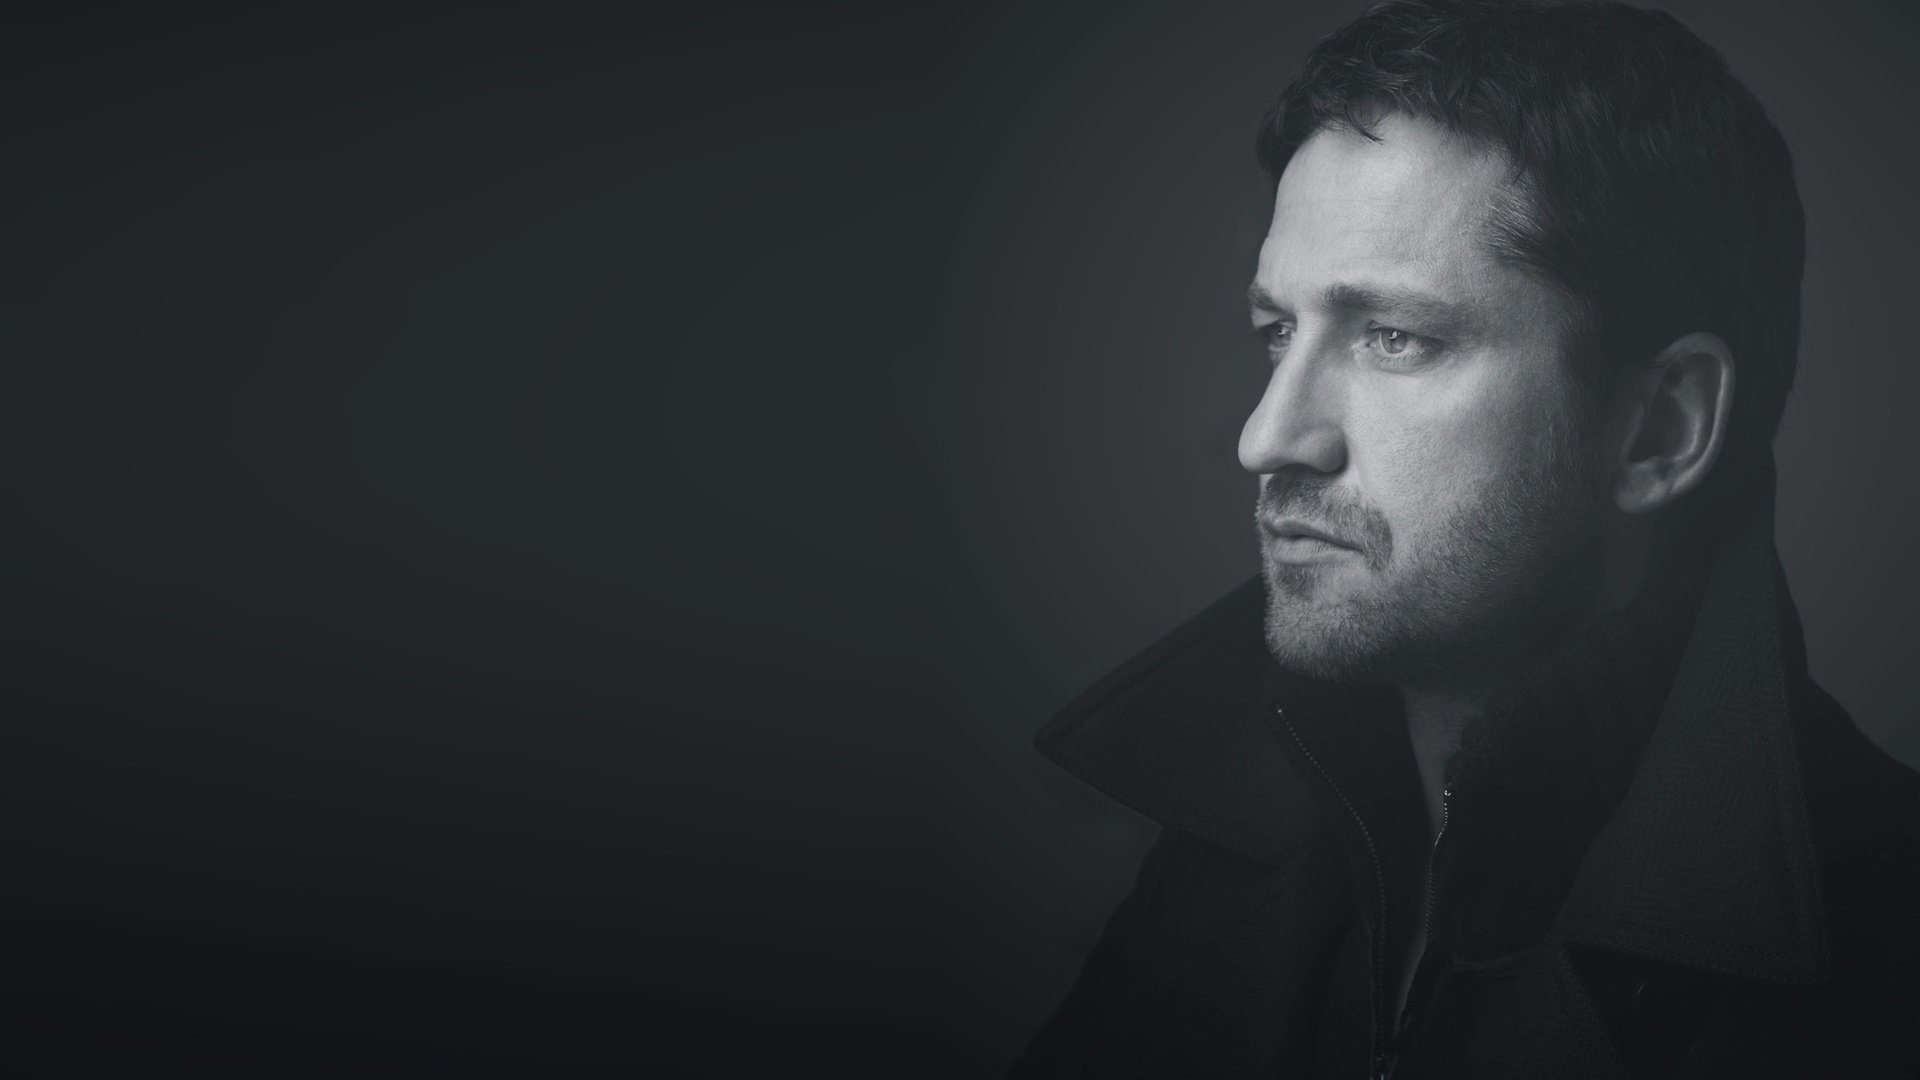 Download full hd 1920x1080 Gerard Butler PC wallpaper ID:208158 for free